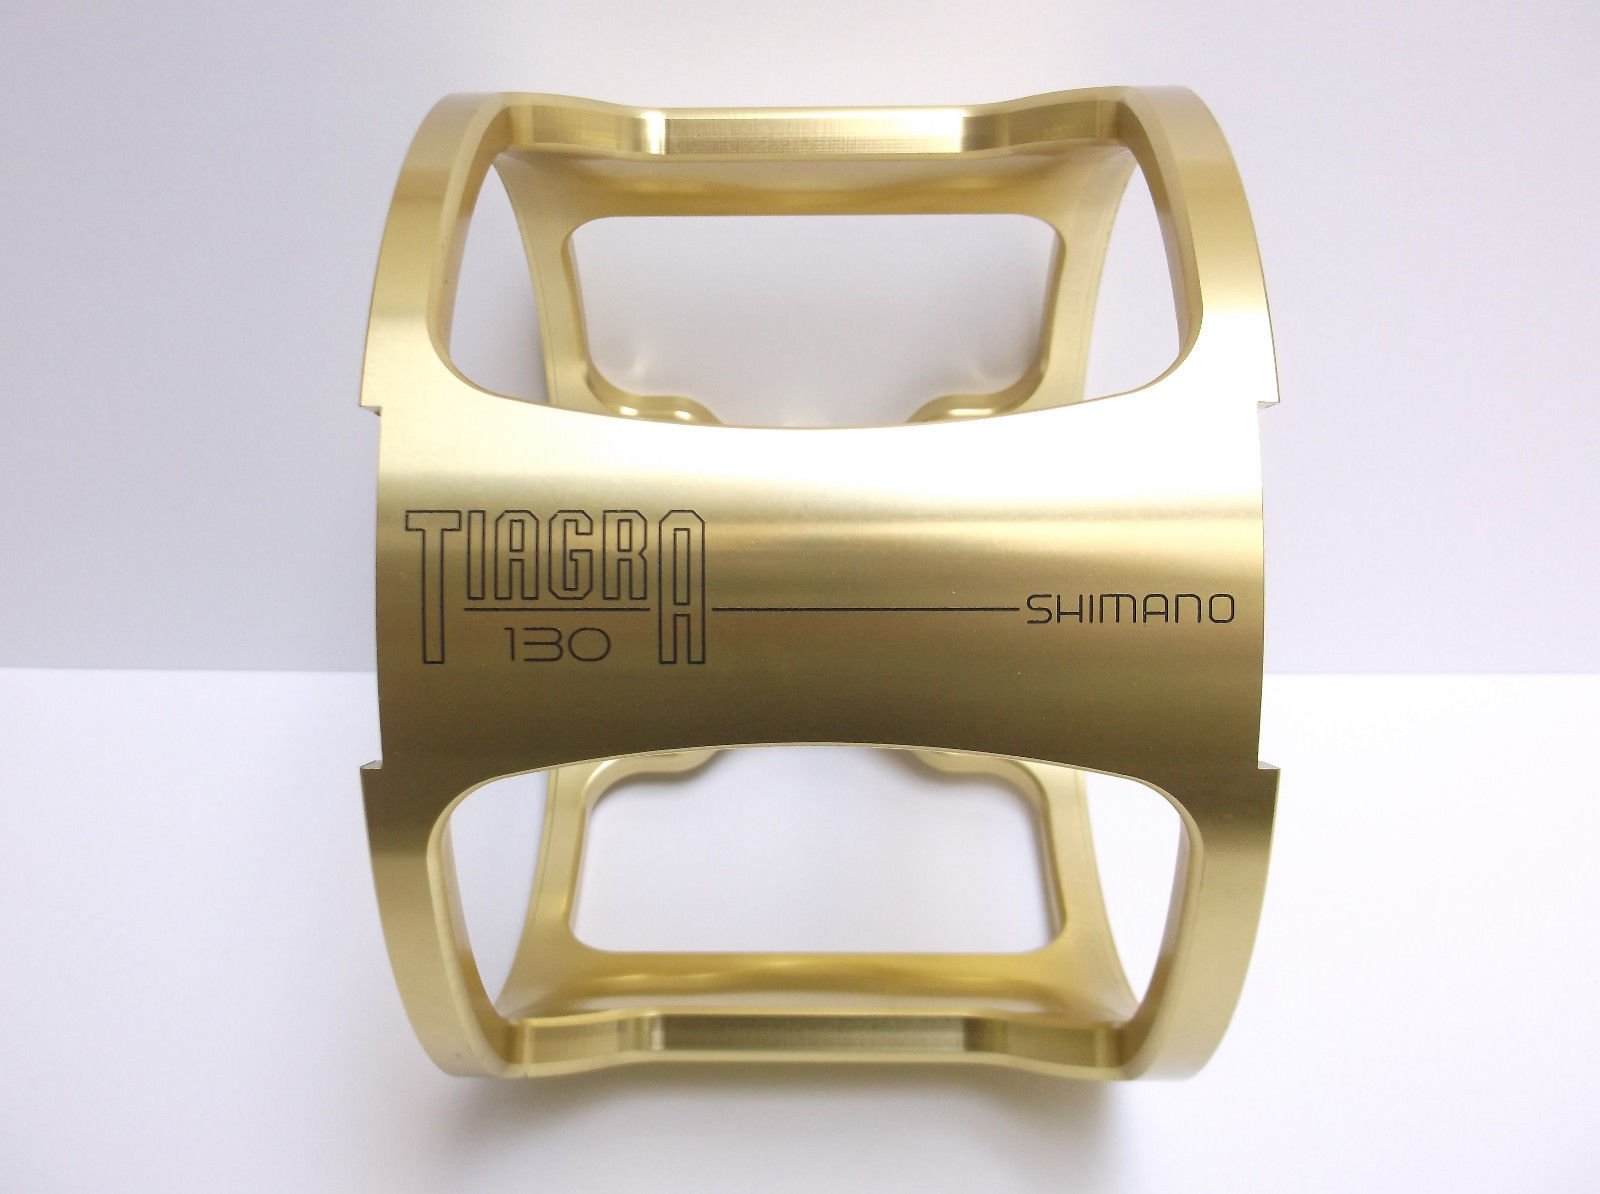 SHIMANO BIG GAME REEL PART - TT0457 Tiagra 130 - One Piece Frame by shimanoo